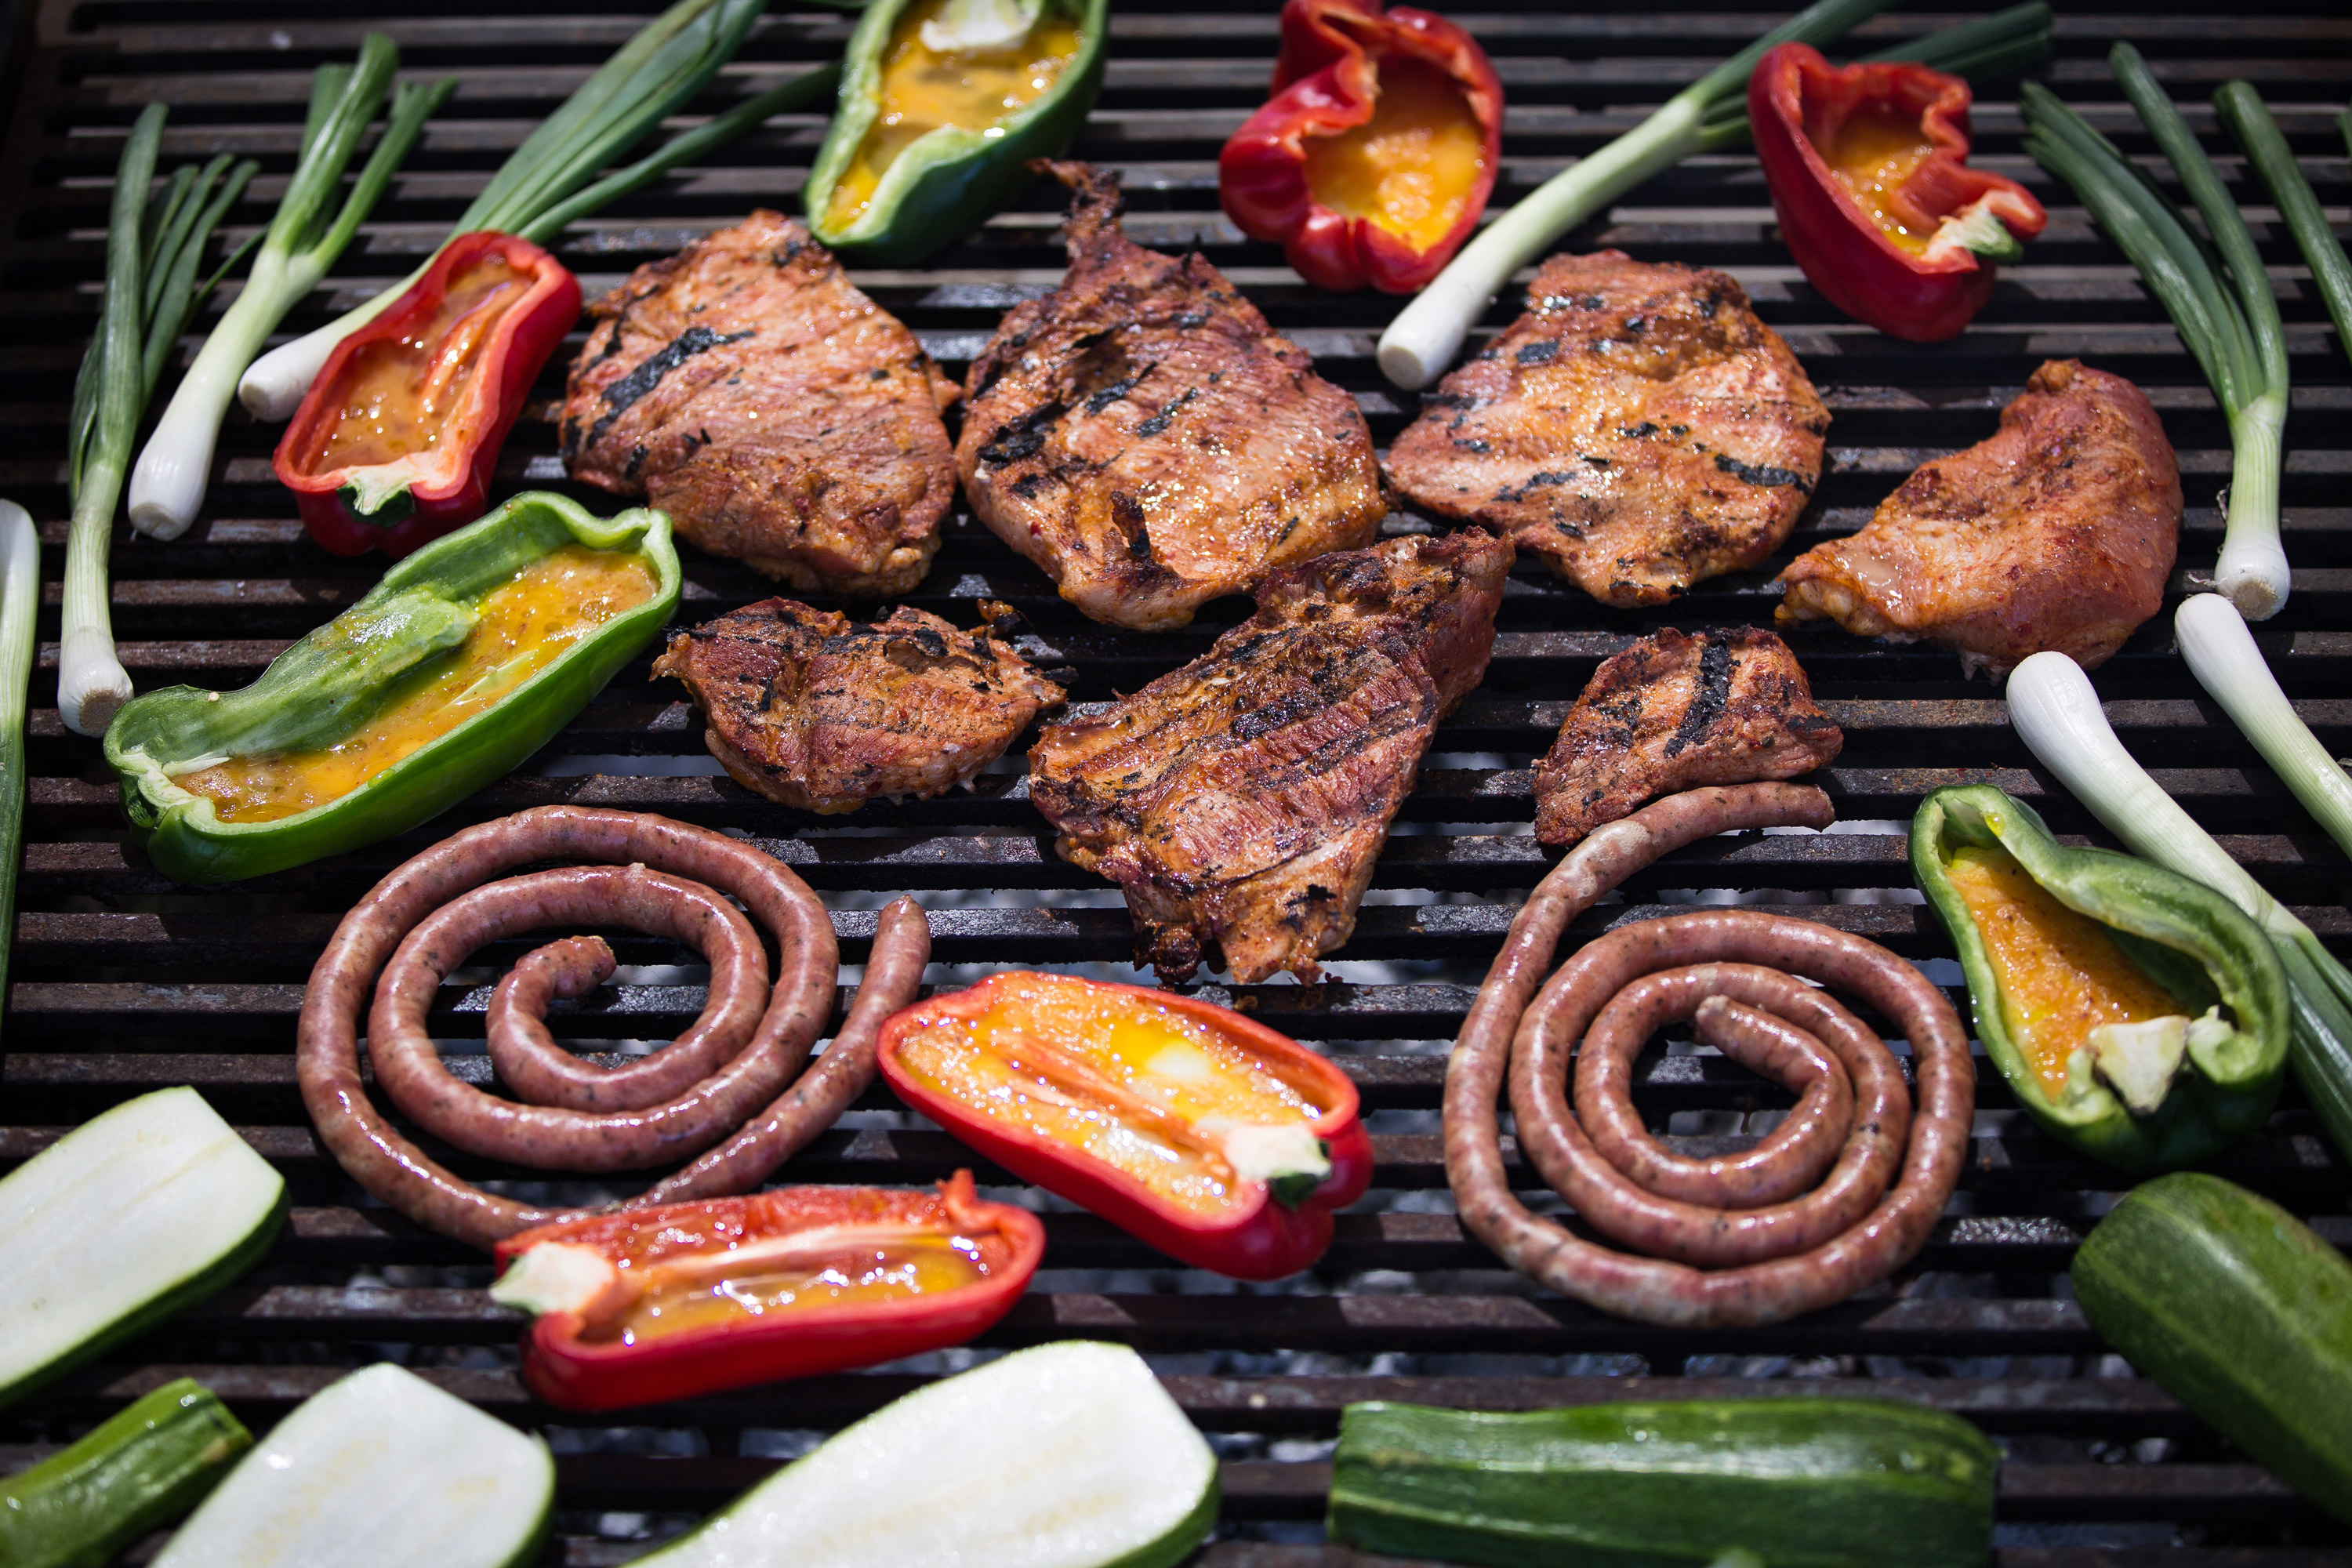 Meat and vegetables on the grill snapped by Nils Kingston during an asado at the winery.